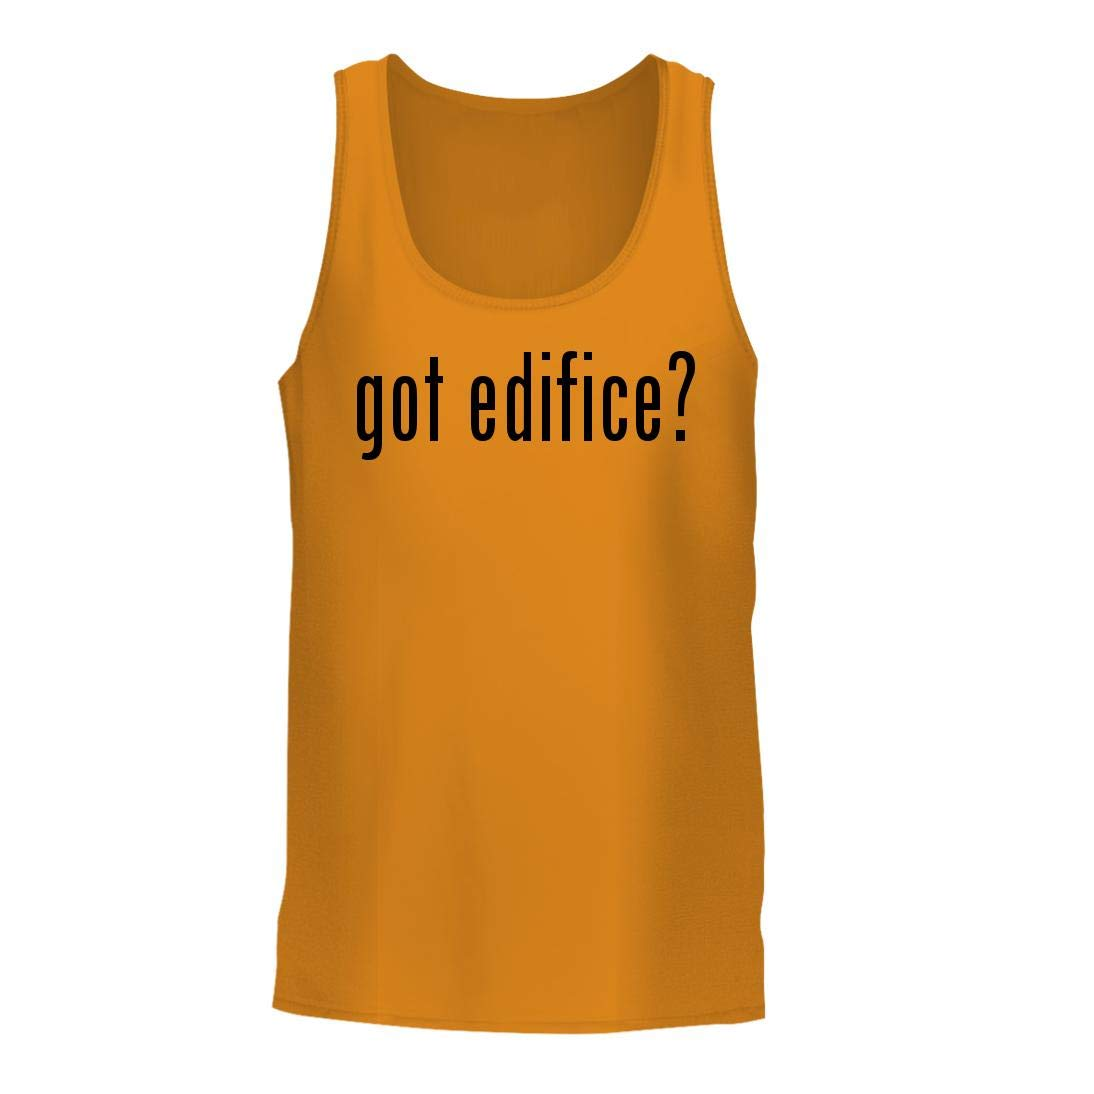 got Edifice? - A Nice Men's Tank Top, Gold, Large by Shirt Me Up